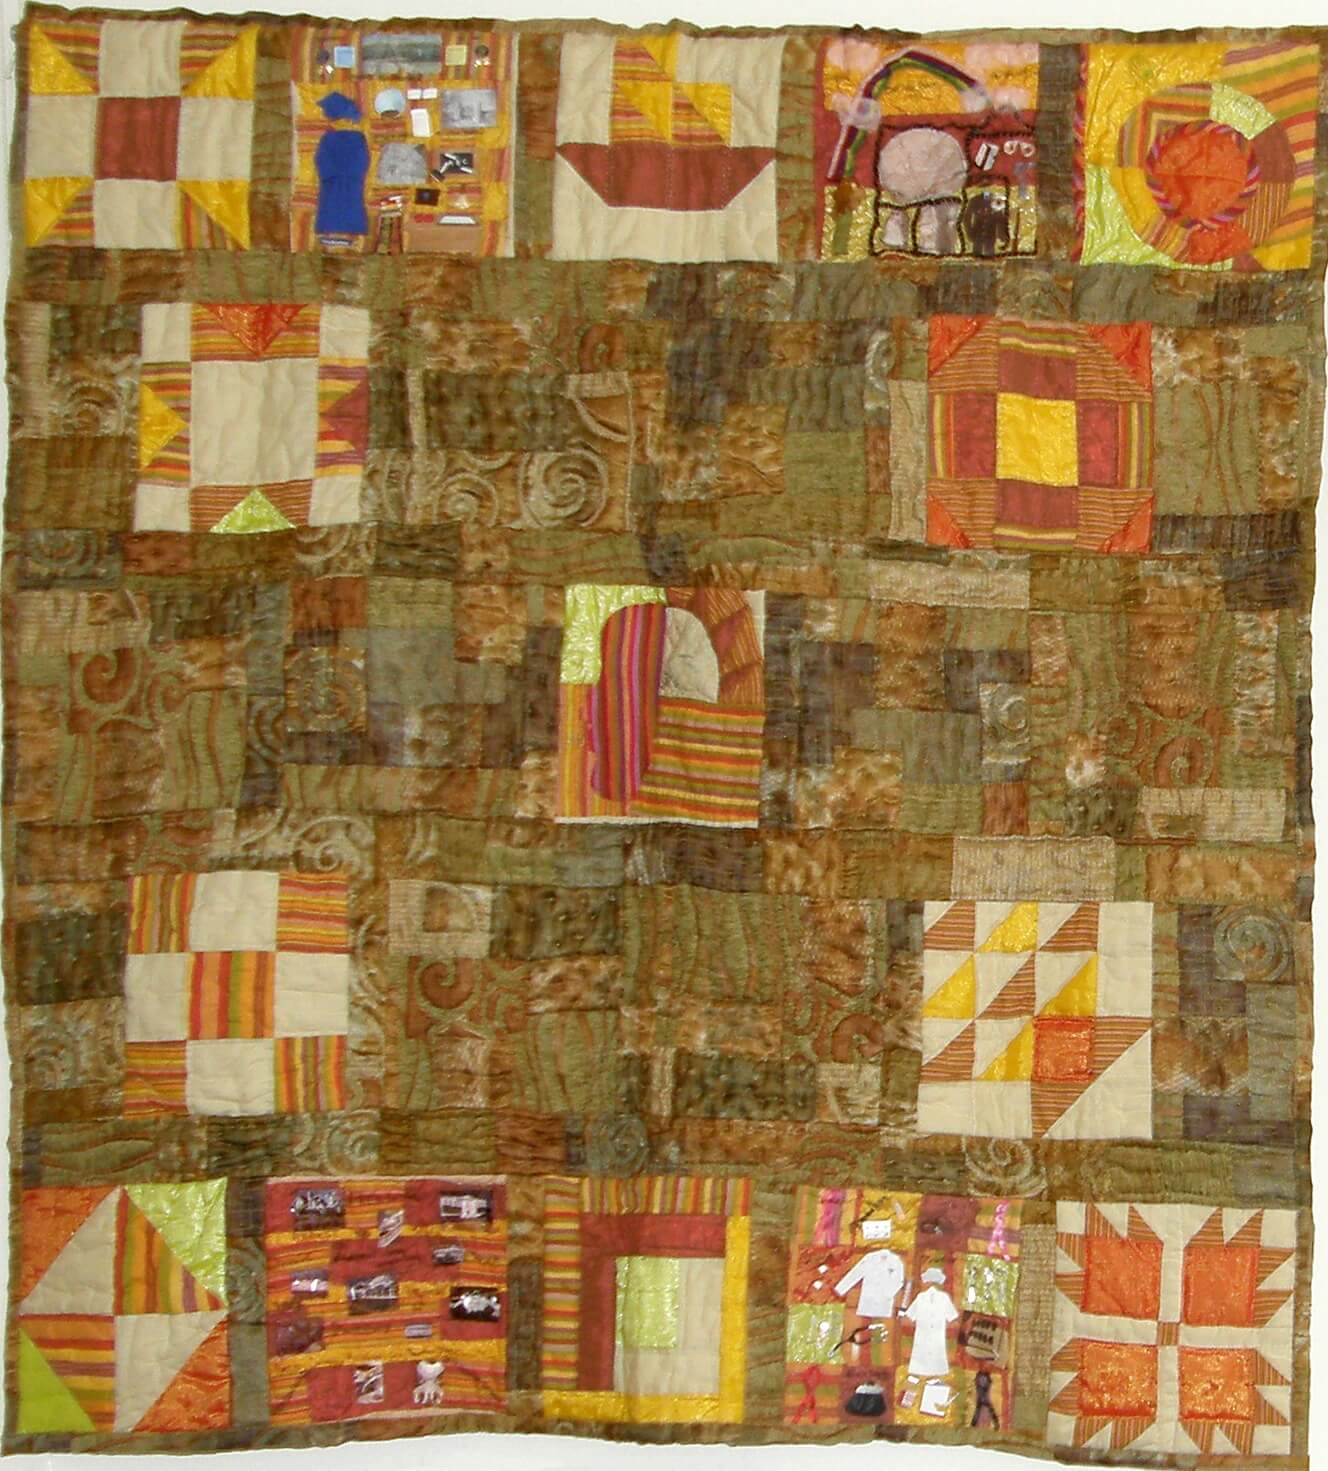 Monkey Wrench Quilt Pattern Underground Railroad. Monkey Wrench ... : monkey wrench quilt pattern history - Adamdwight.com